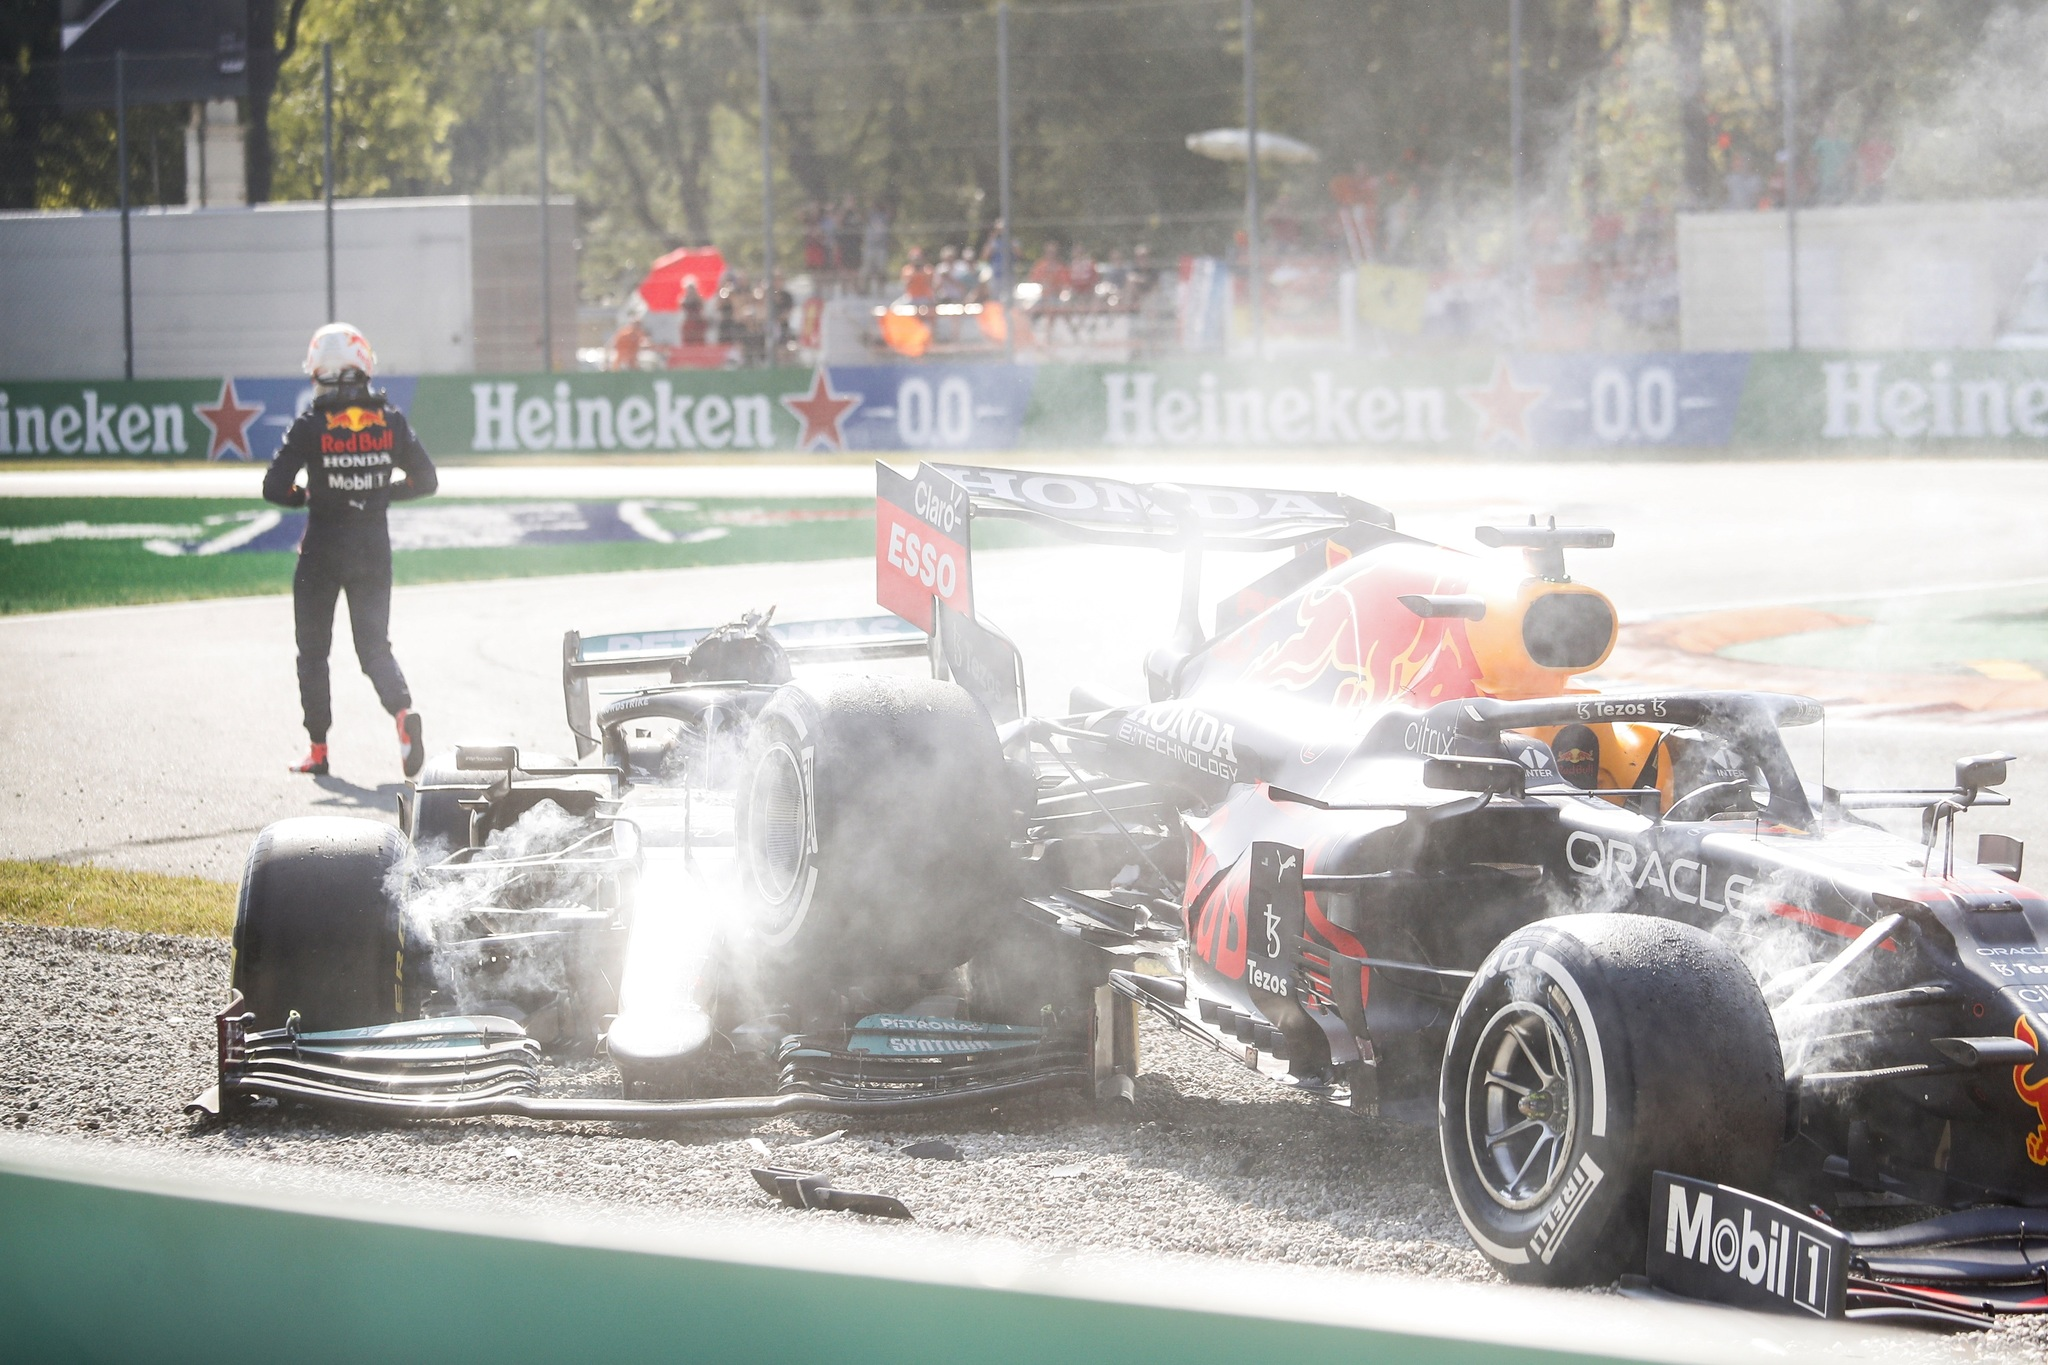 Monza (Italy), 12/09/2021.- Dutch Formula One driver Max lt;HIT gt;Verstappen lt;/HIT gt; (L) of Red Bull Racing walks away after colliding with British Formula One driver Lewis Hamilton of Mercedes-AMG Petronas during the Formula One Grand Prix of Italy at the Autodromo Nazionale Monza race track in Monza, Italy, 12 September 2021. (Fórmula Uno, Italia) EFE/EPA/MATTEO BAZZI